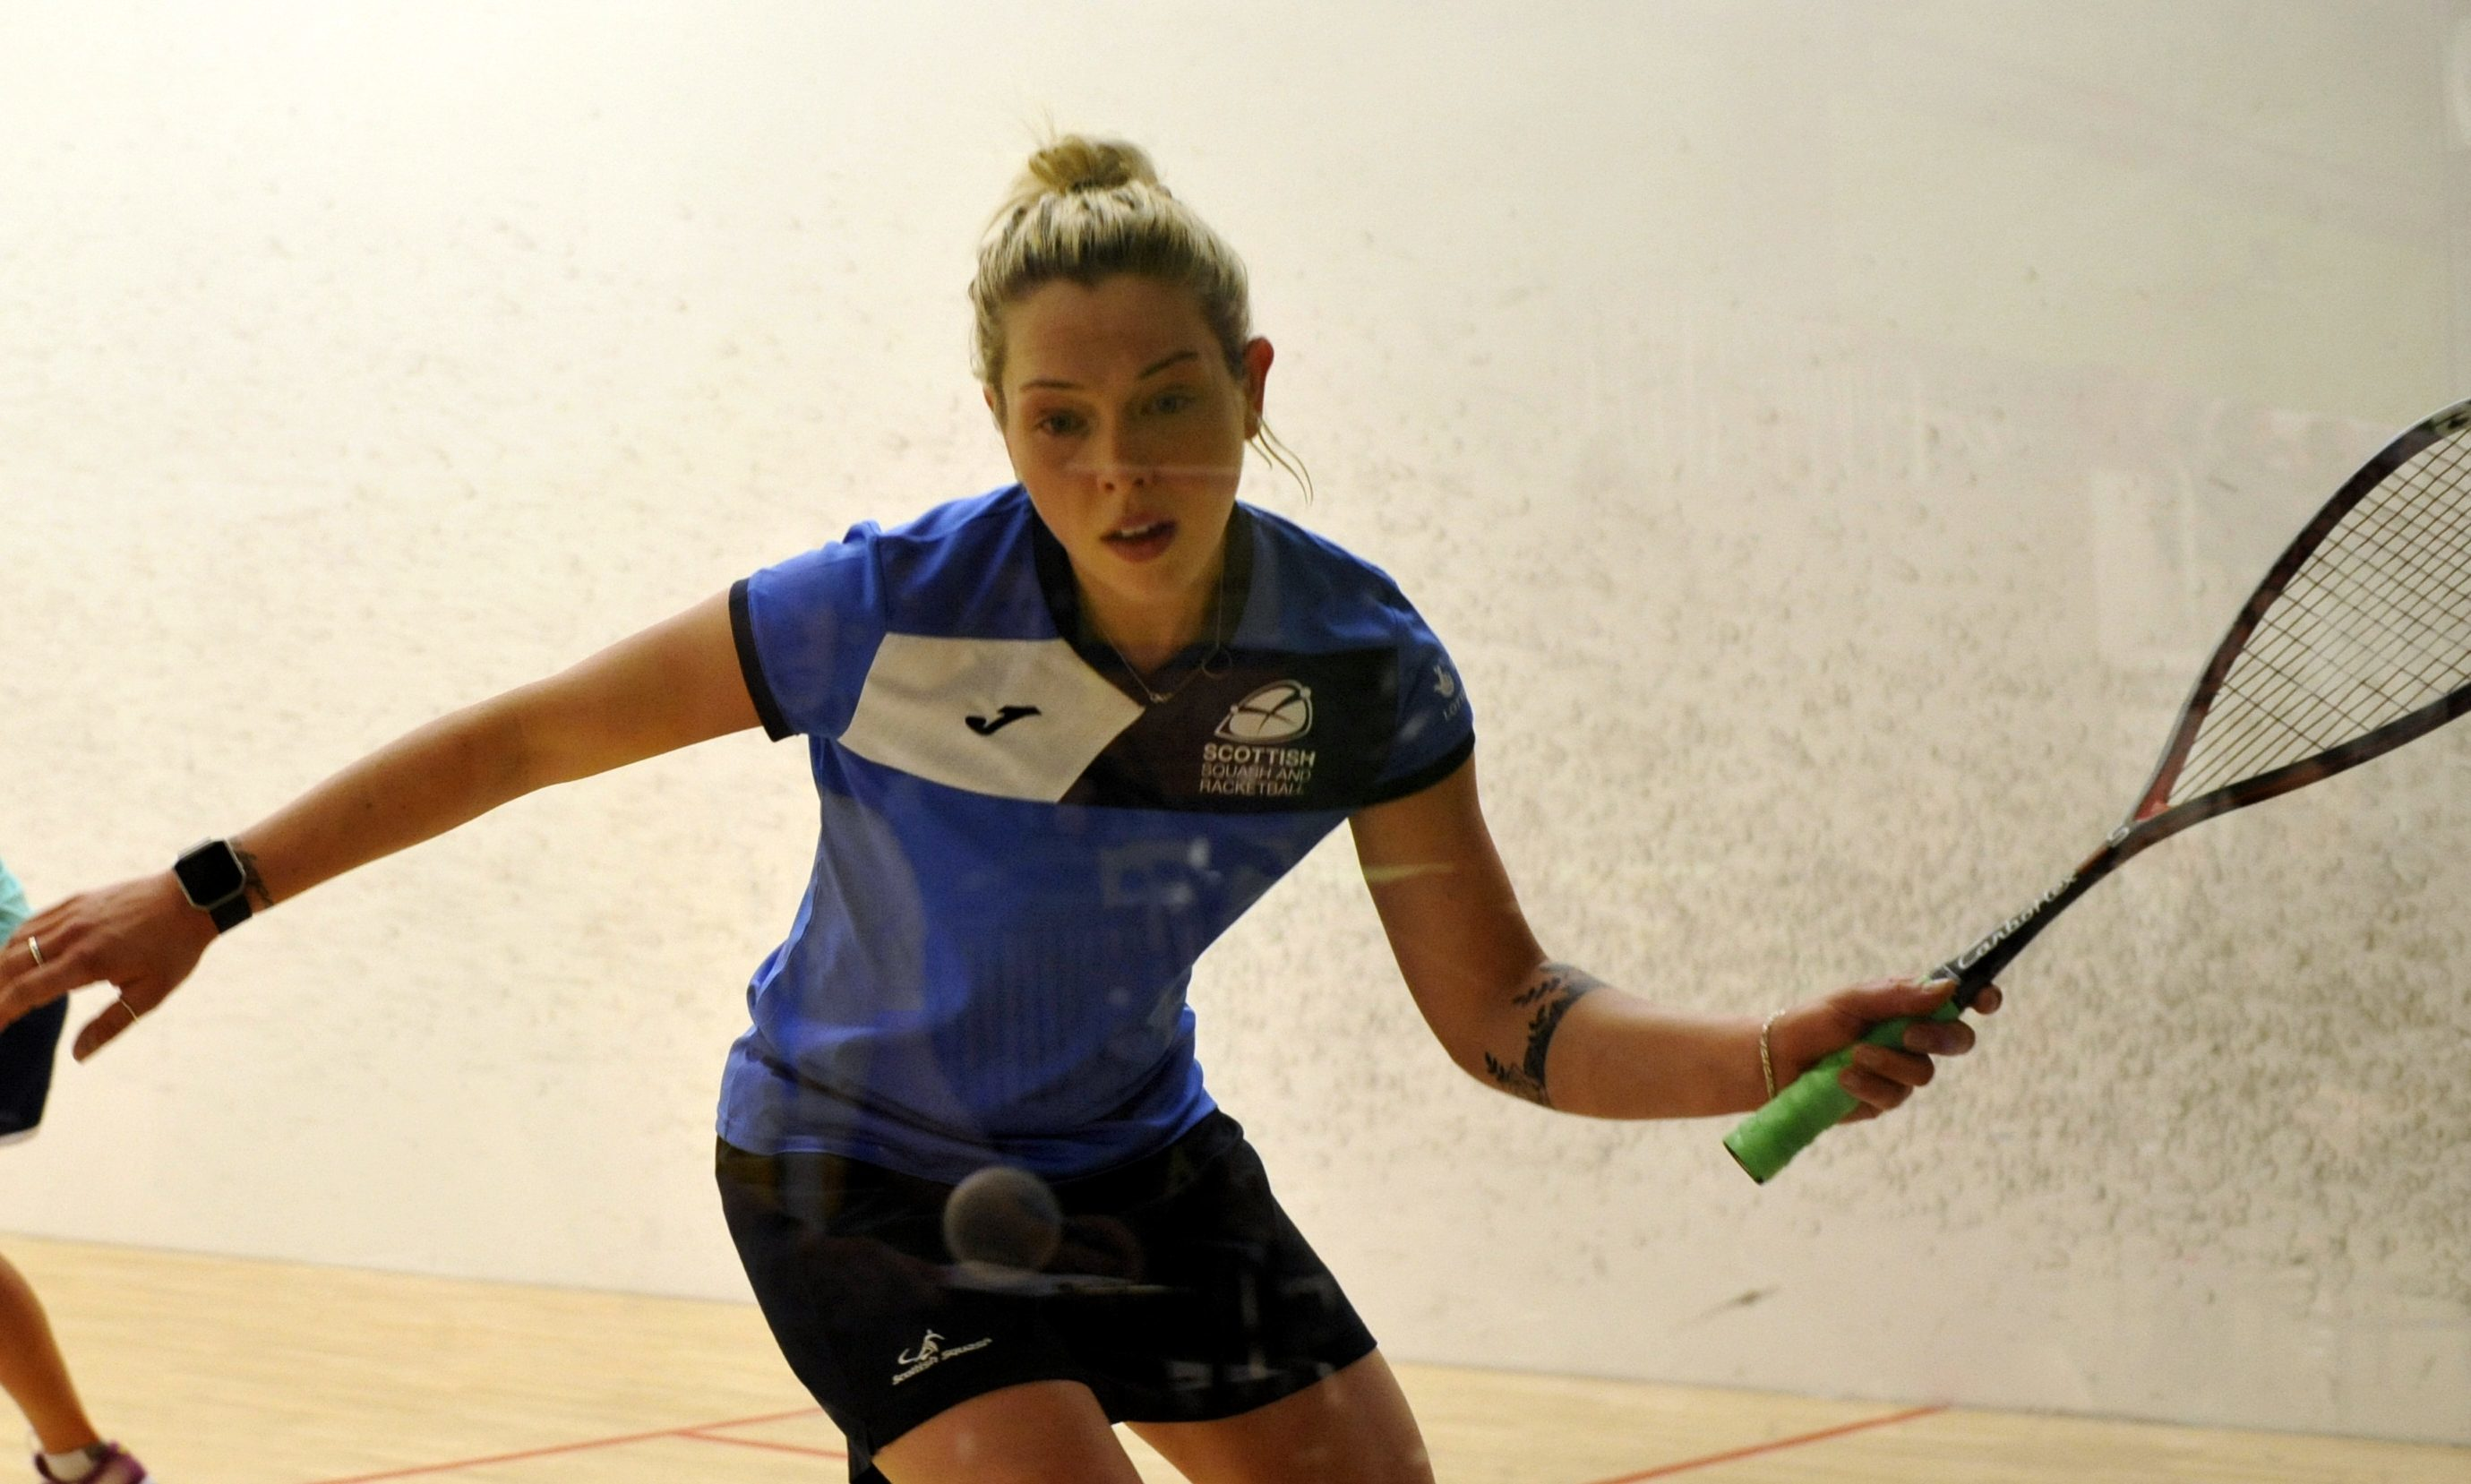 Lisa Aitken in action.